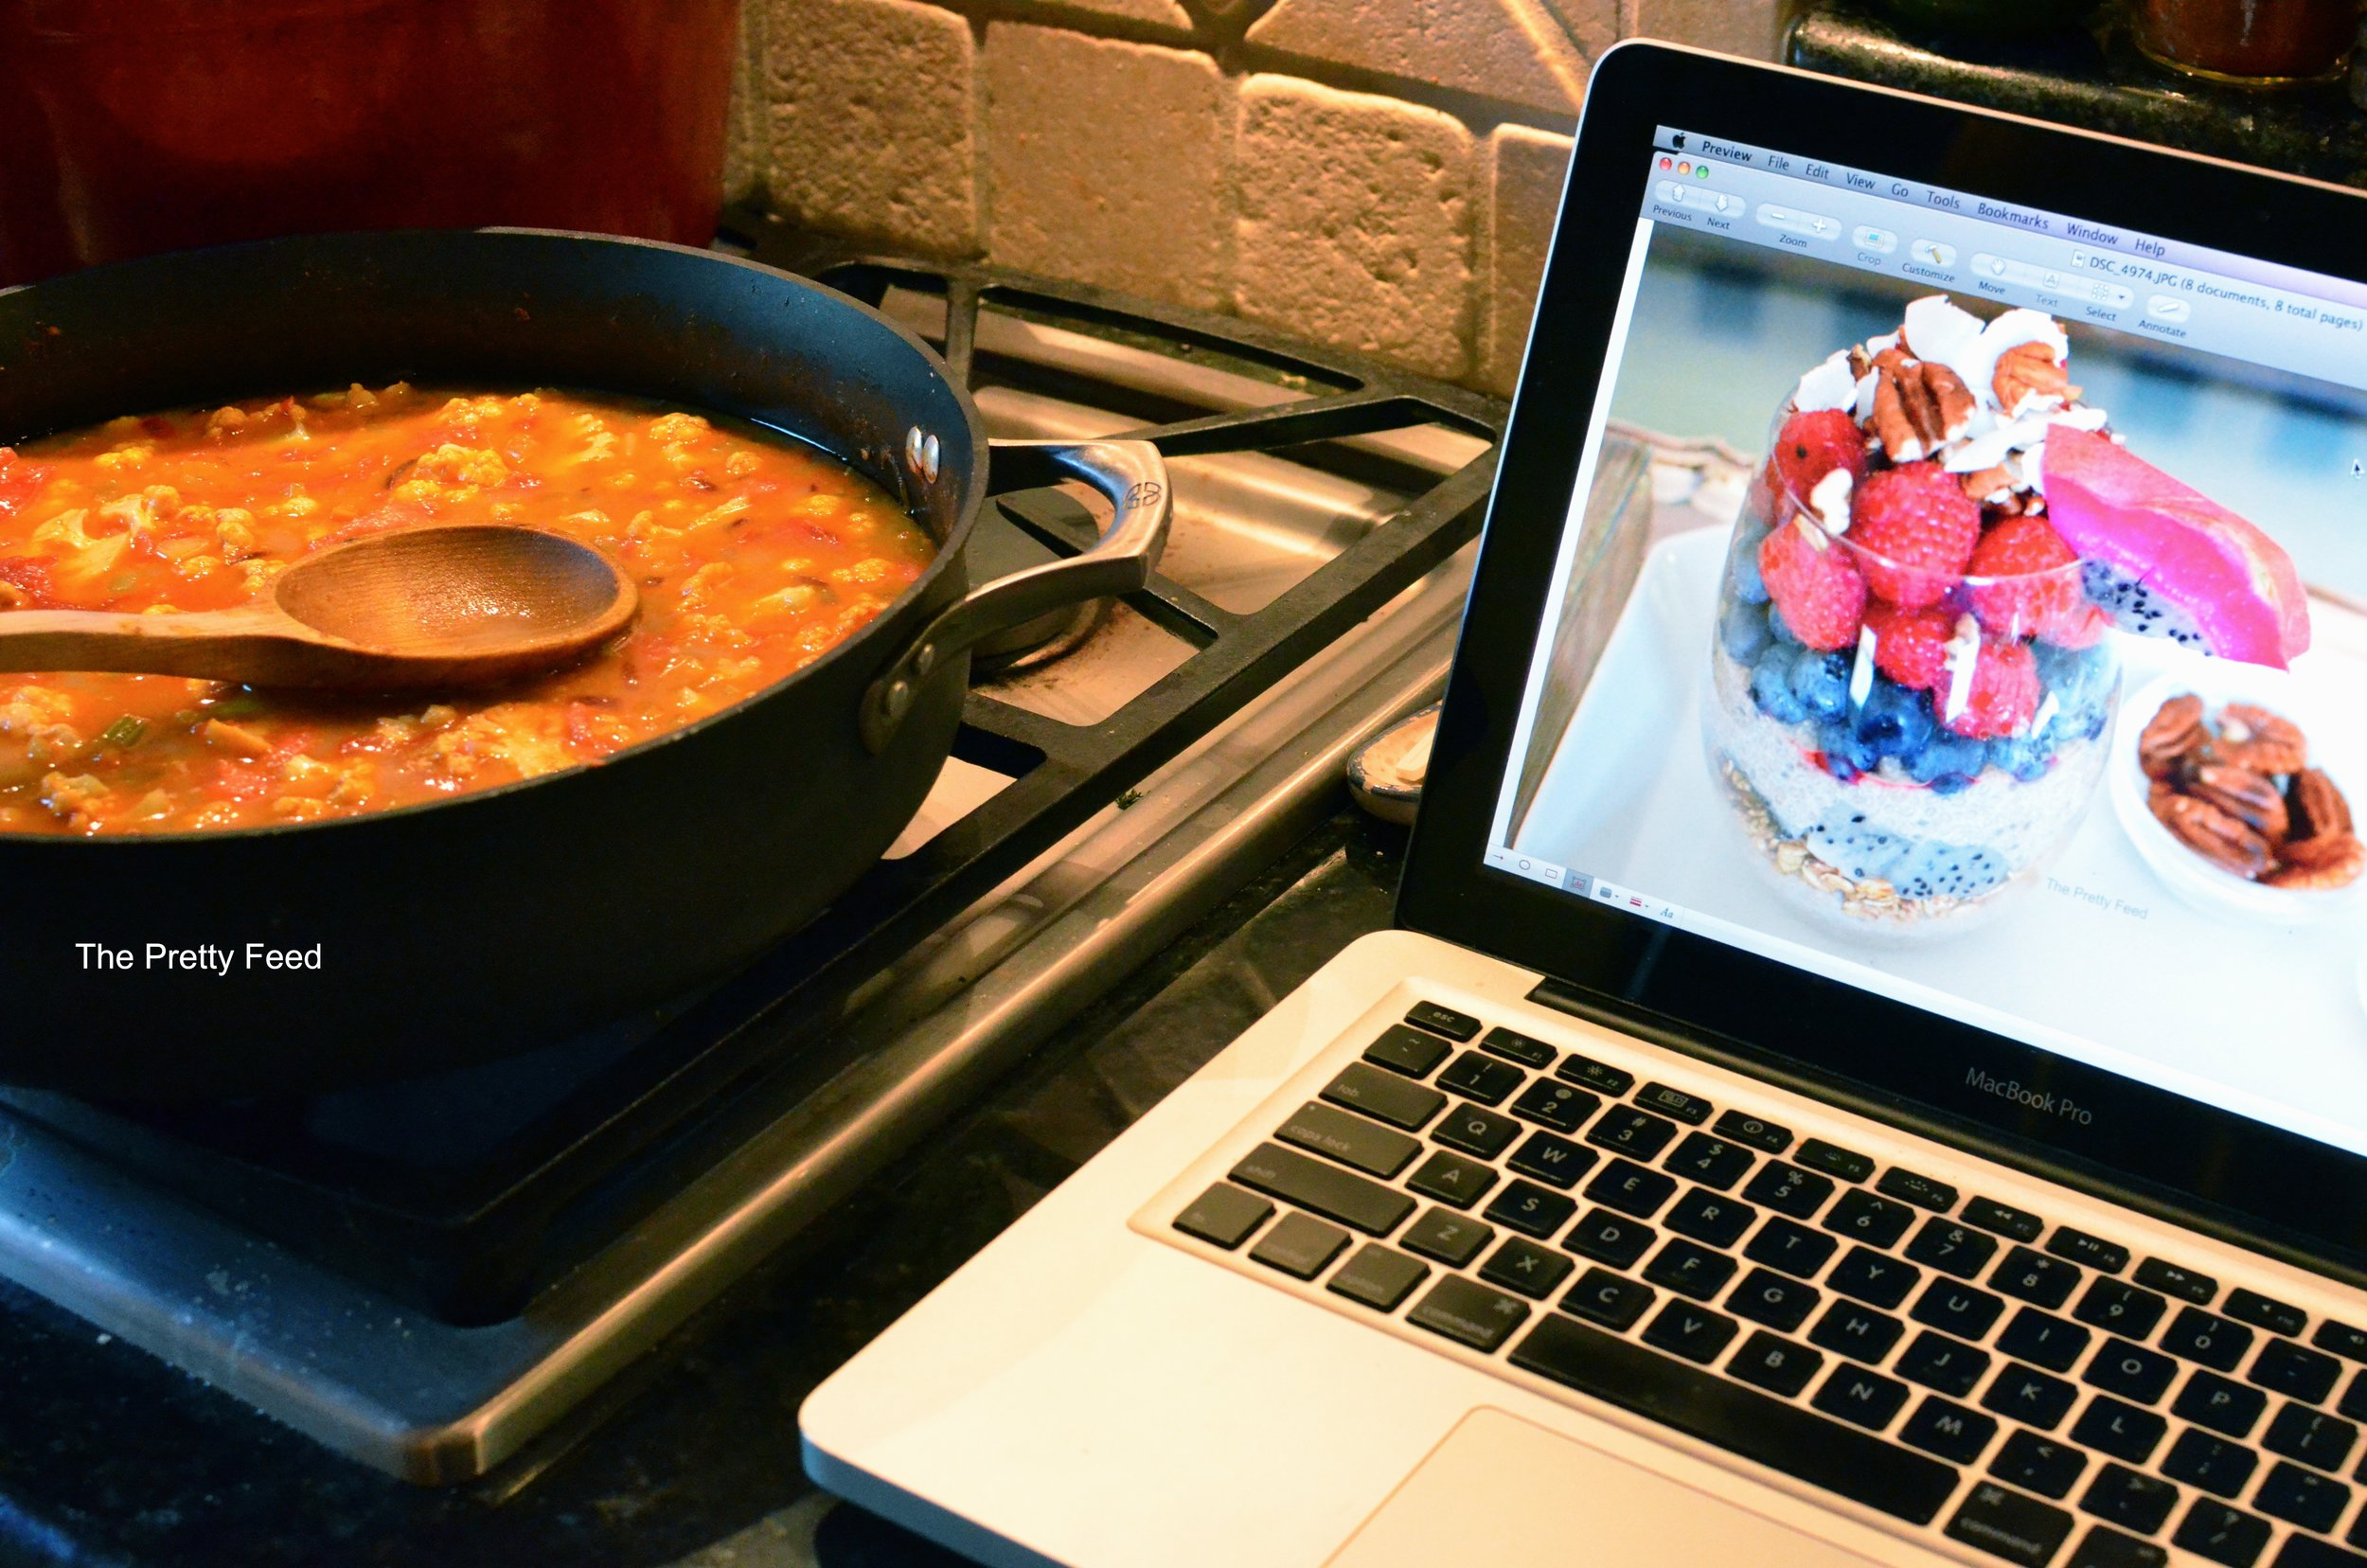 Working on a recipe coming soon while we cook!